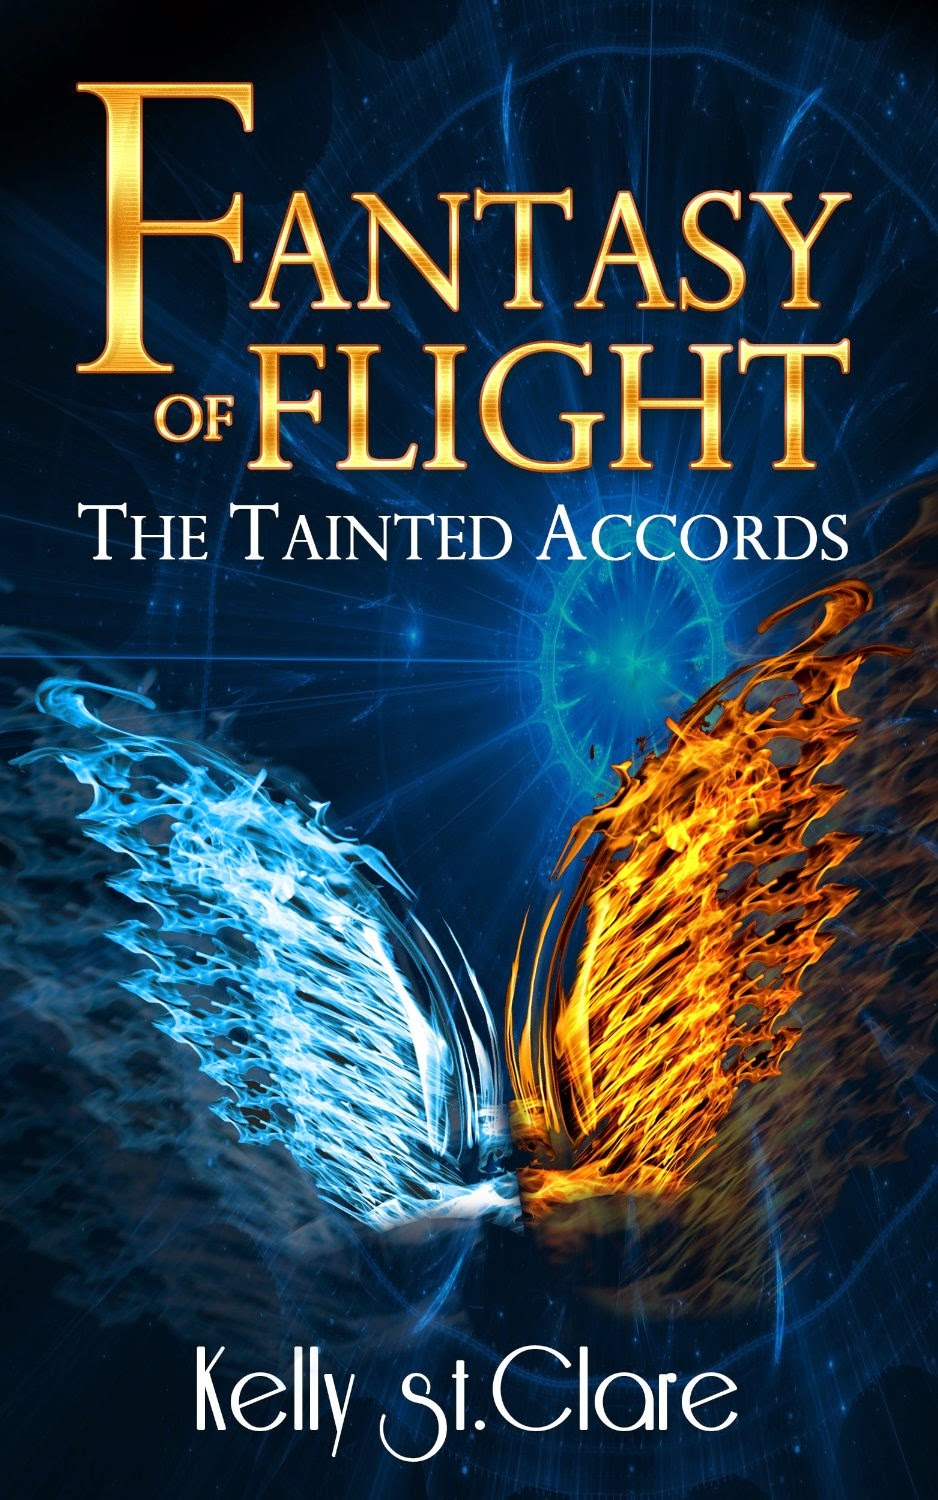 http://www.amazon.com/Fantasy-Flight-Tainted-Accords-Book-ebook/dp/B00TXWVMHQ/ref=la_B00S73MIGG_1_2?s=books&ie=UTF8&qid=1428953708&sr=1-2